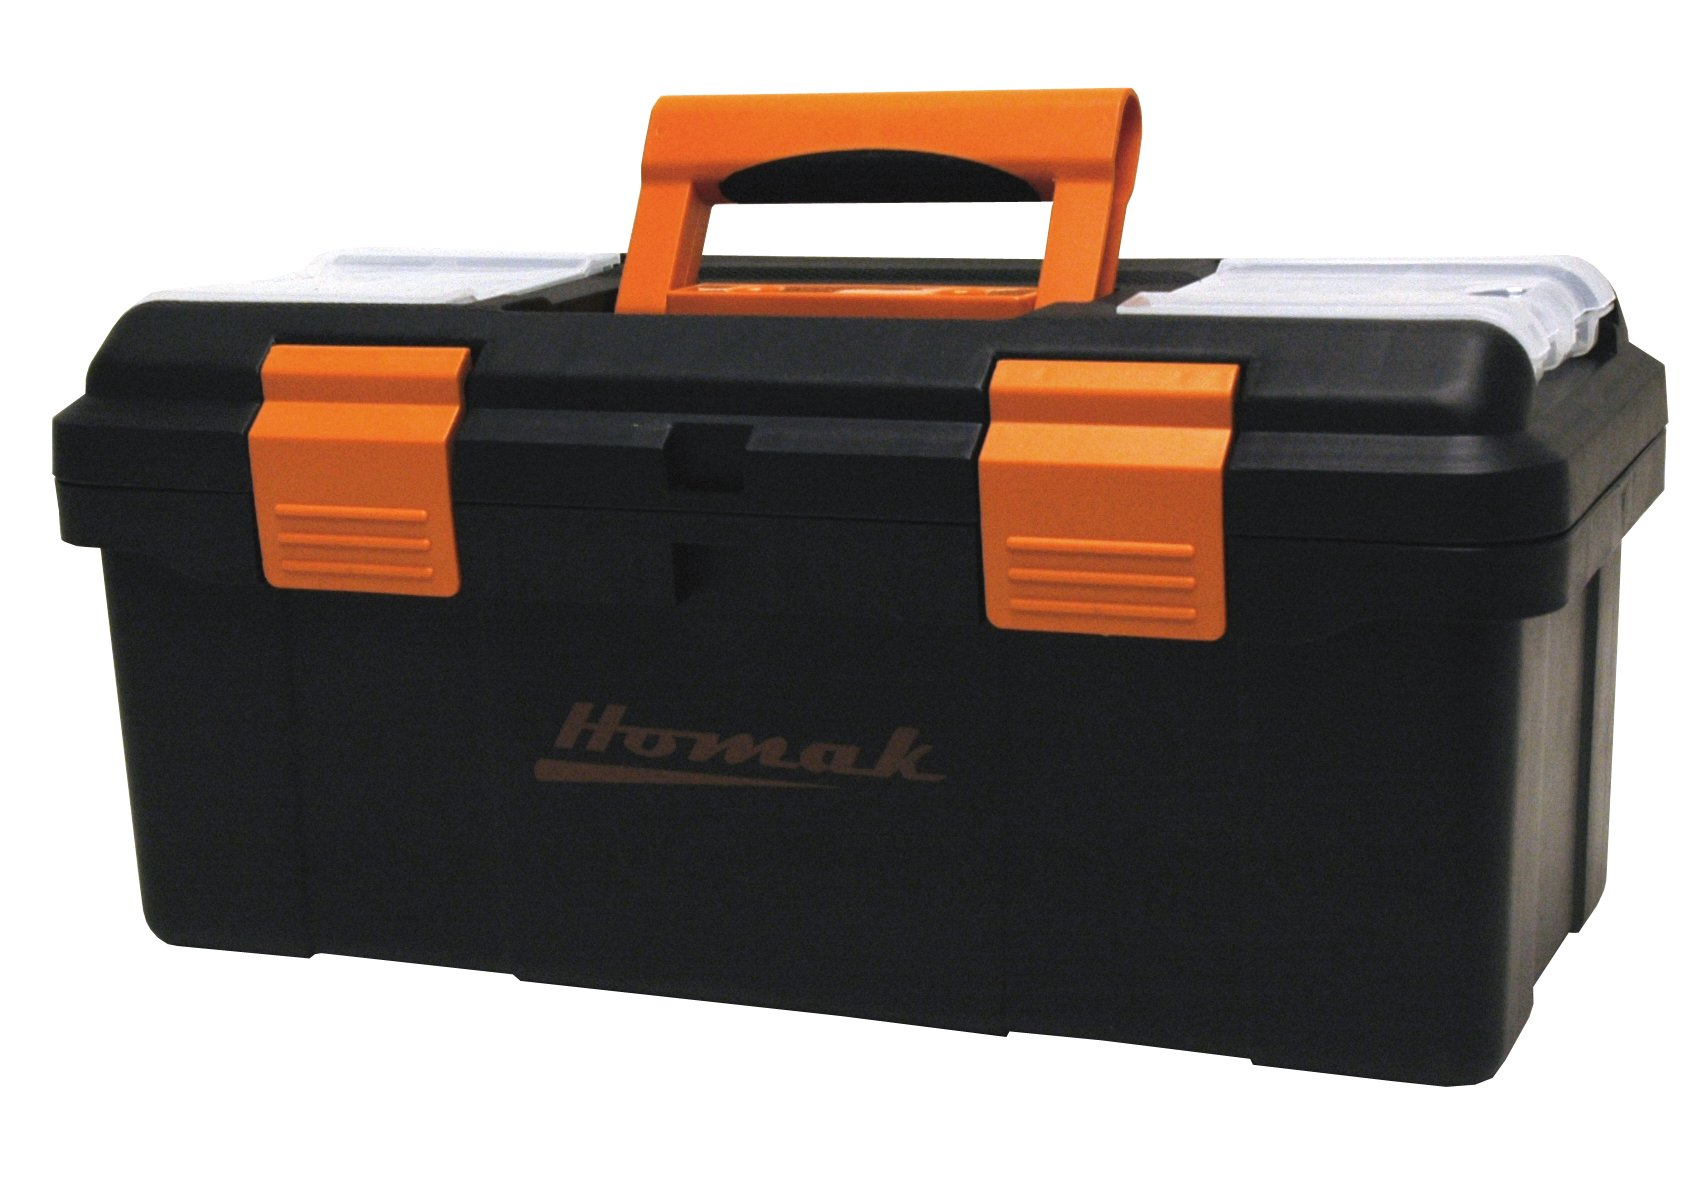 Homak 16-Inch Plastic Tool Box with Tray and Dividers, Black, BK00116004